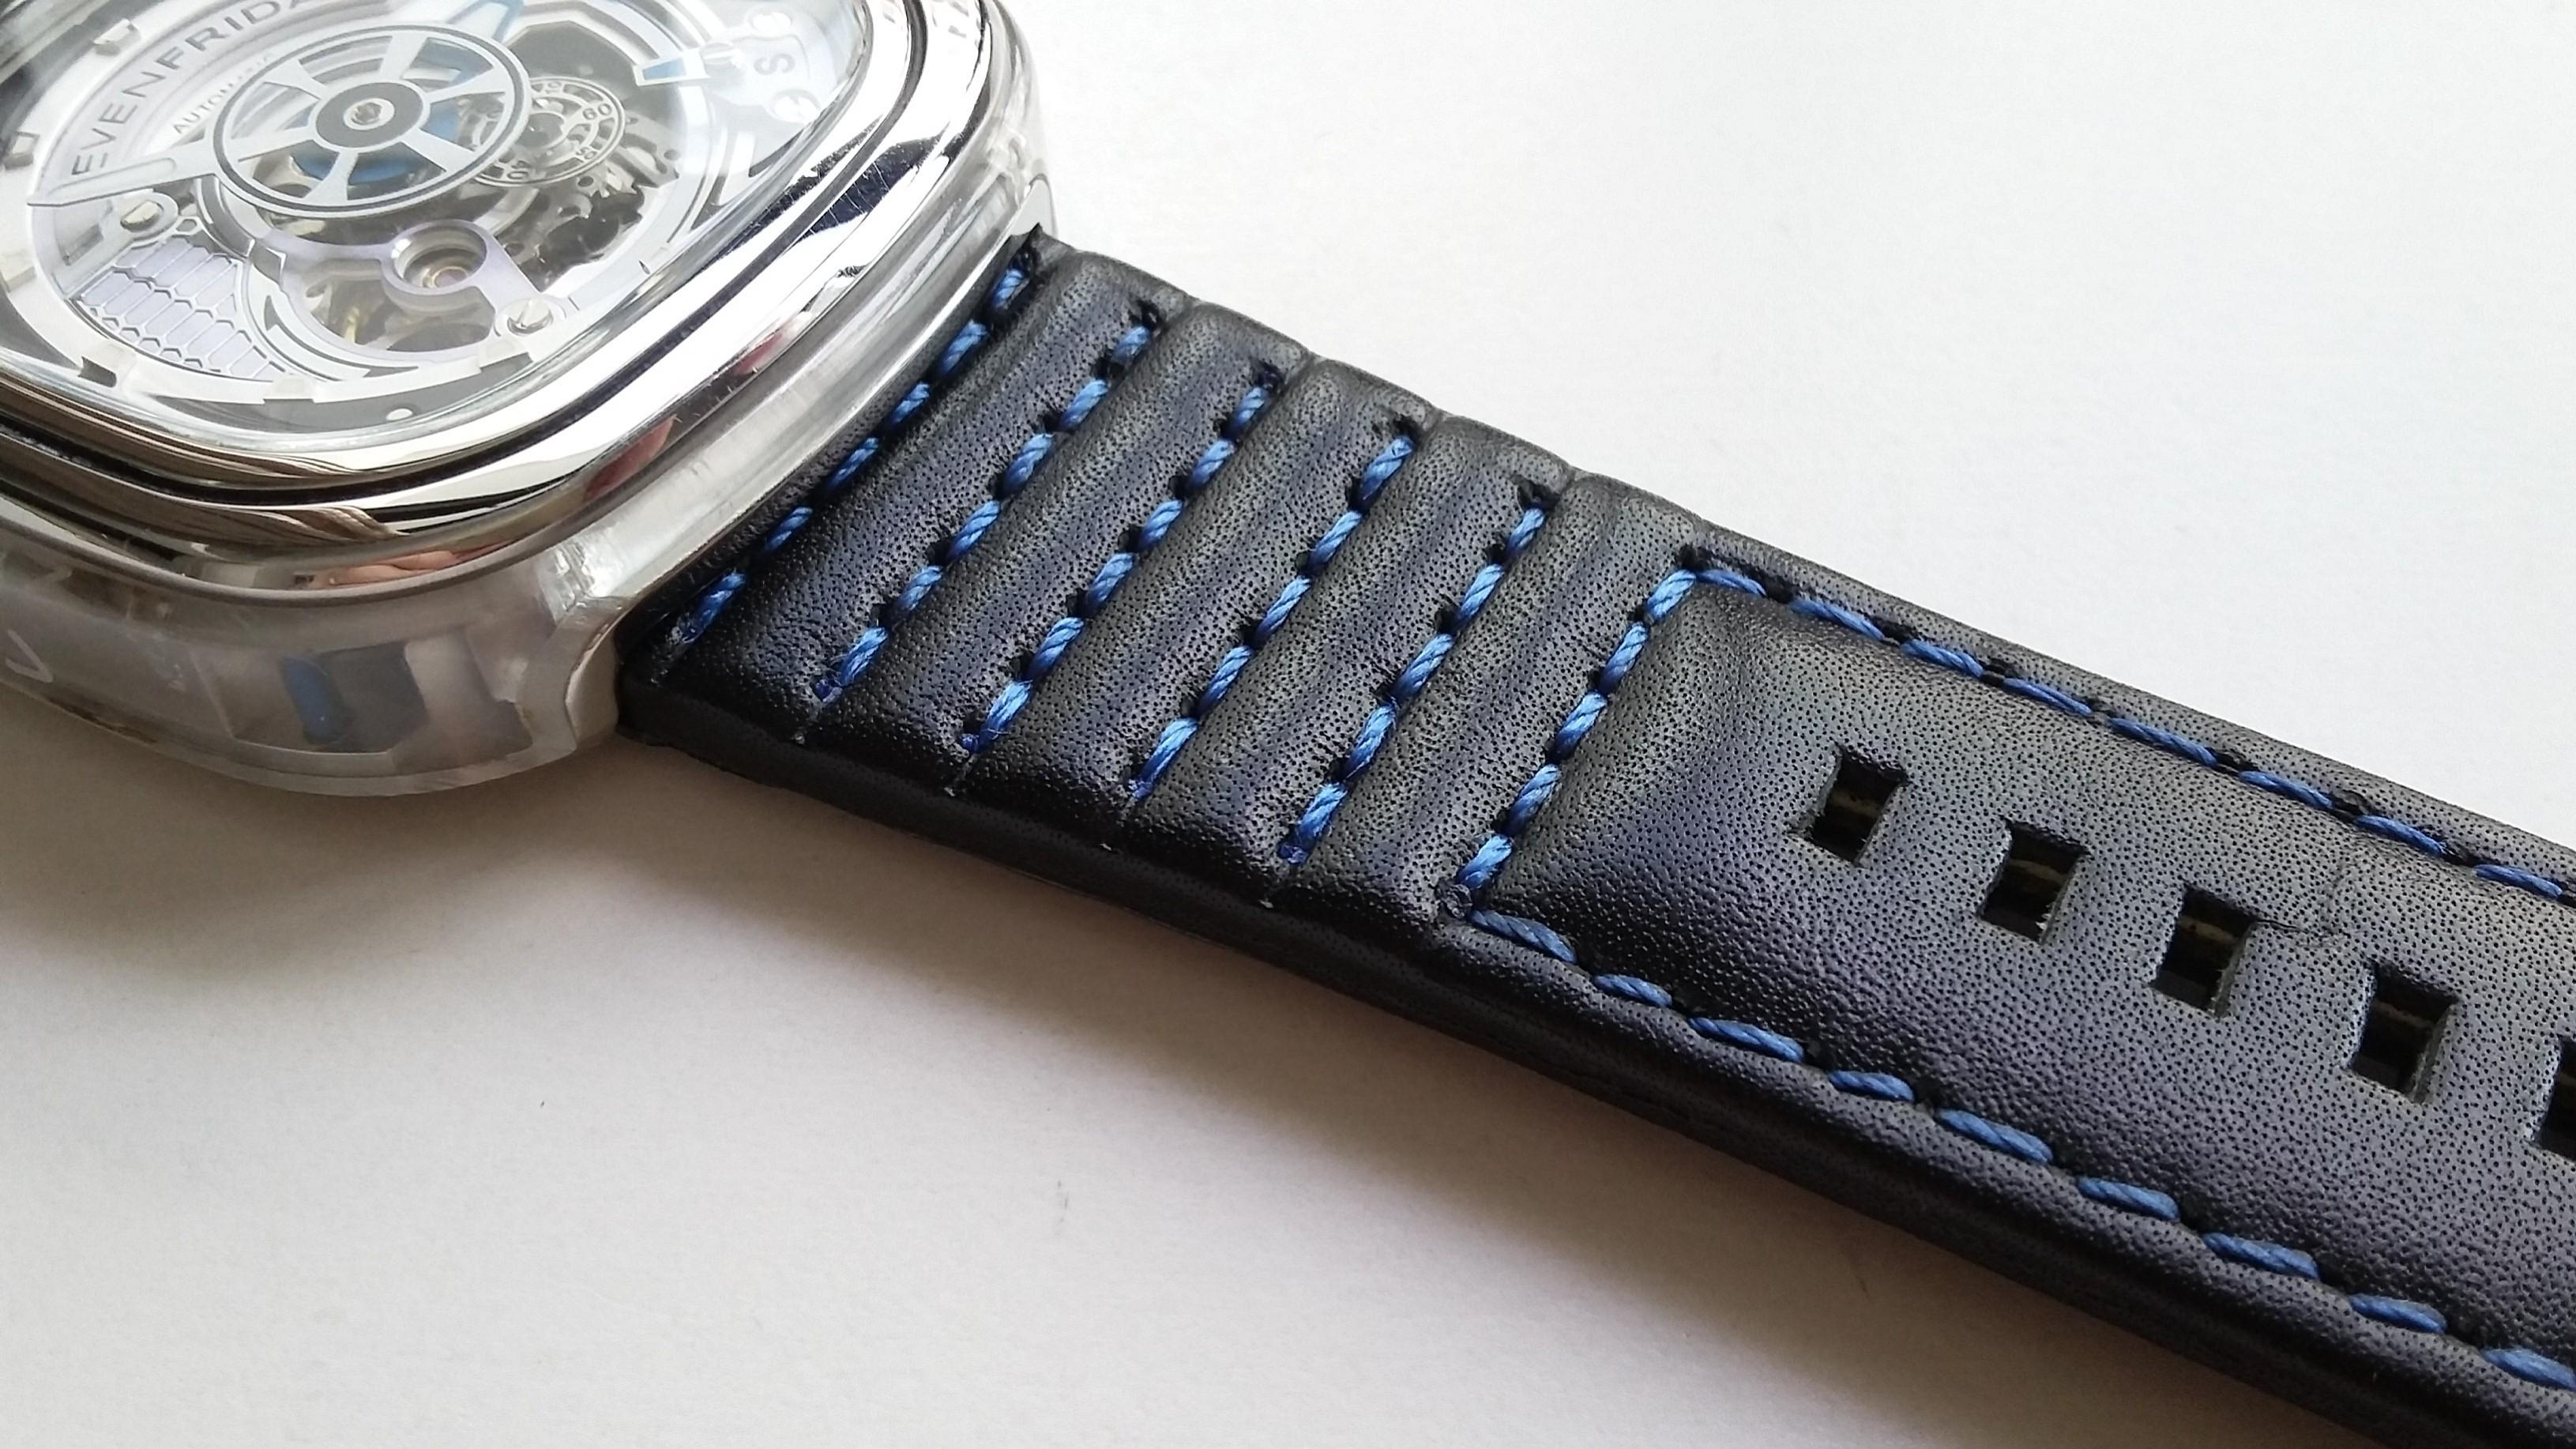 28mm GENUINE THICK BLACK LEATHER STRAP HAND SEWN W BLUE STITCHES AND STAINLESS STEEL BUCKLE FOR USE ON SEVENFRIDAY (PRICE INCLUDES FITMENT)